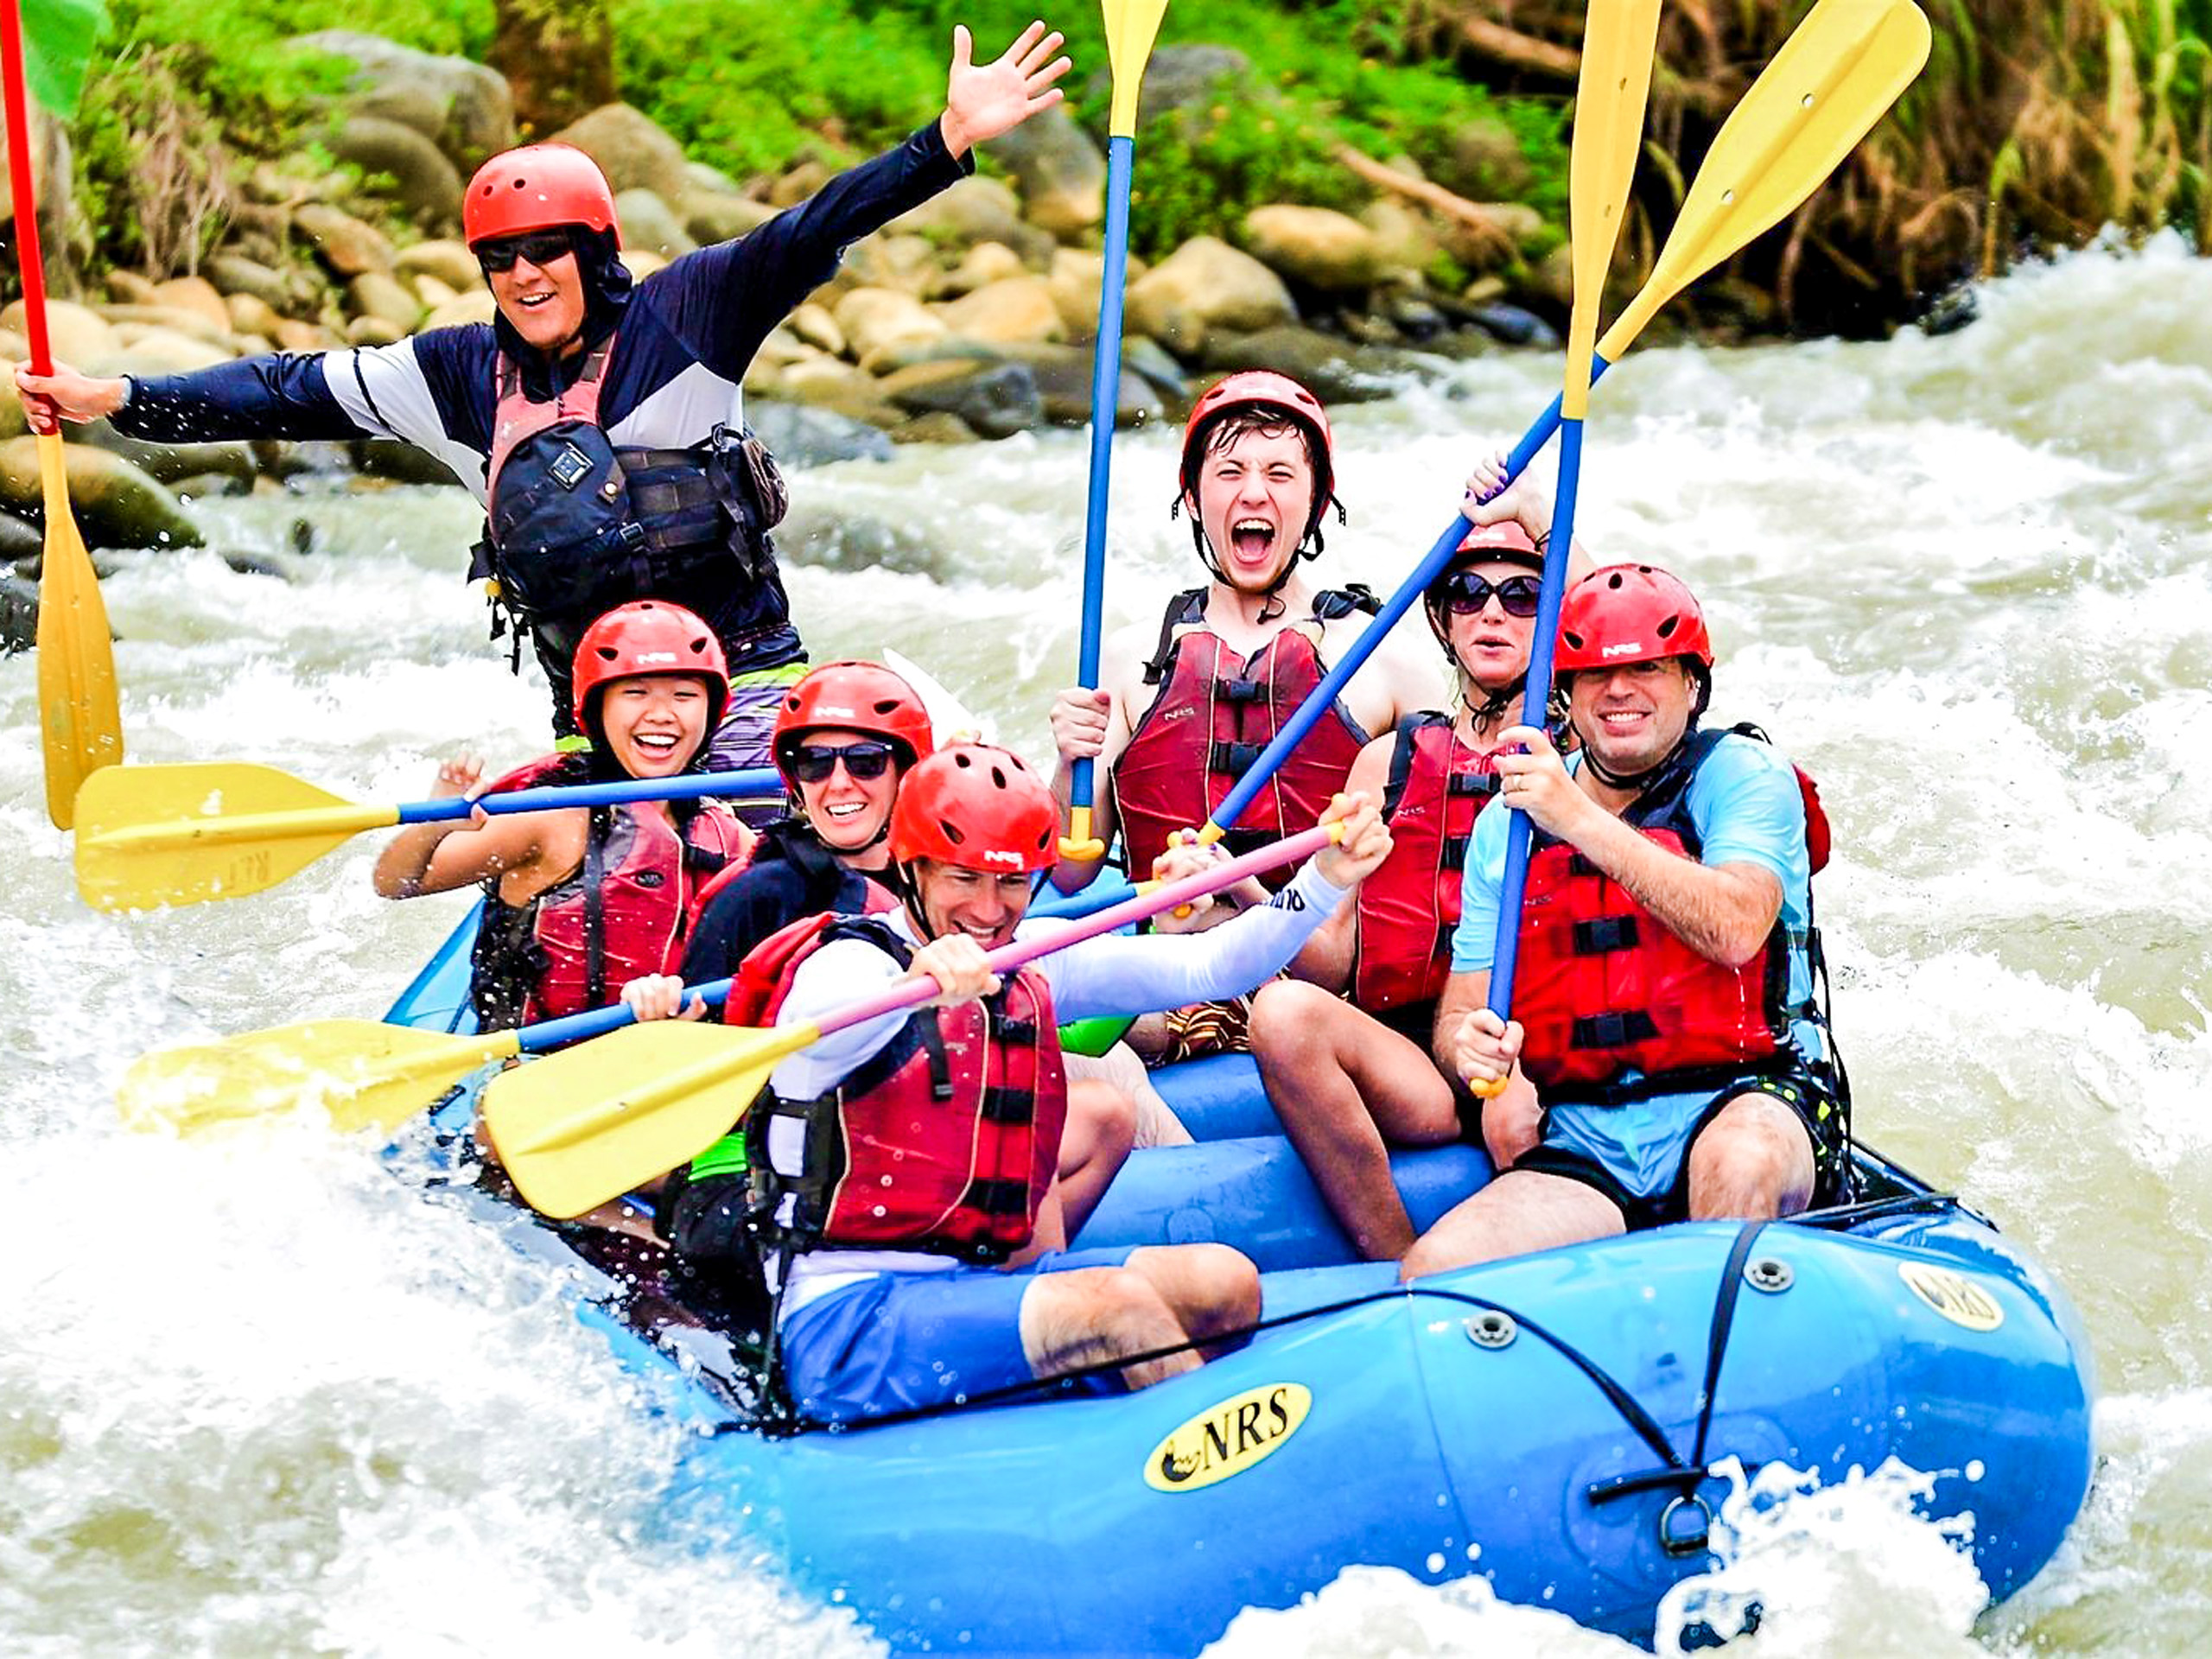 Rafting on a rocky river